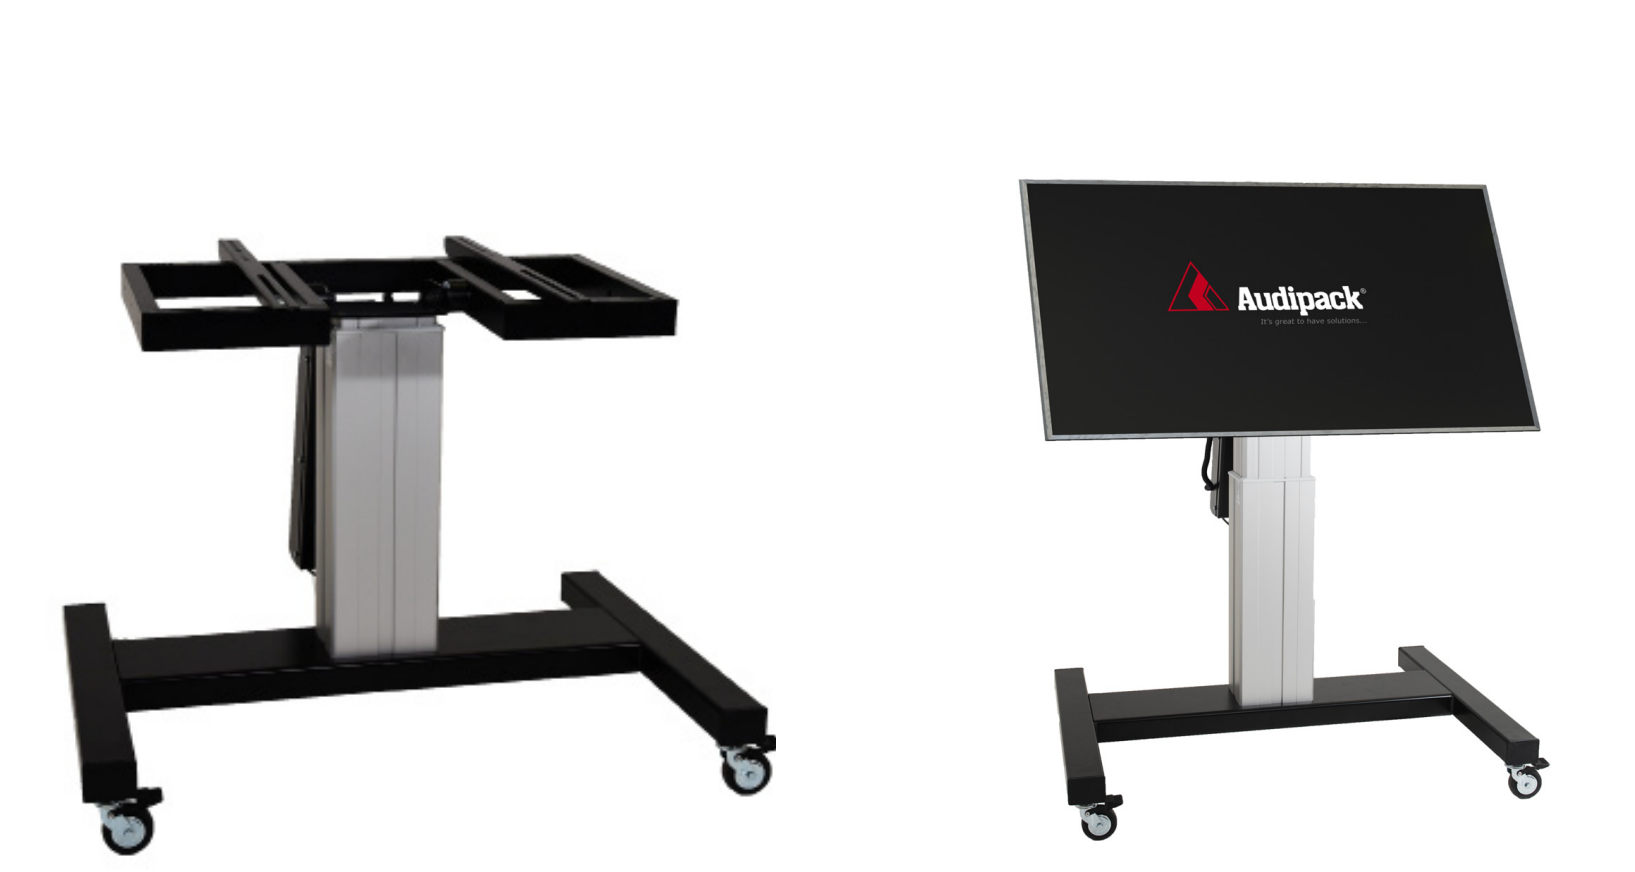 Audipack Trolley stand for touch screens up to 150 Kg motorized